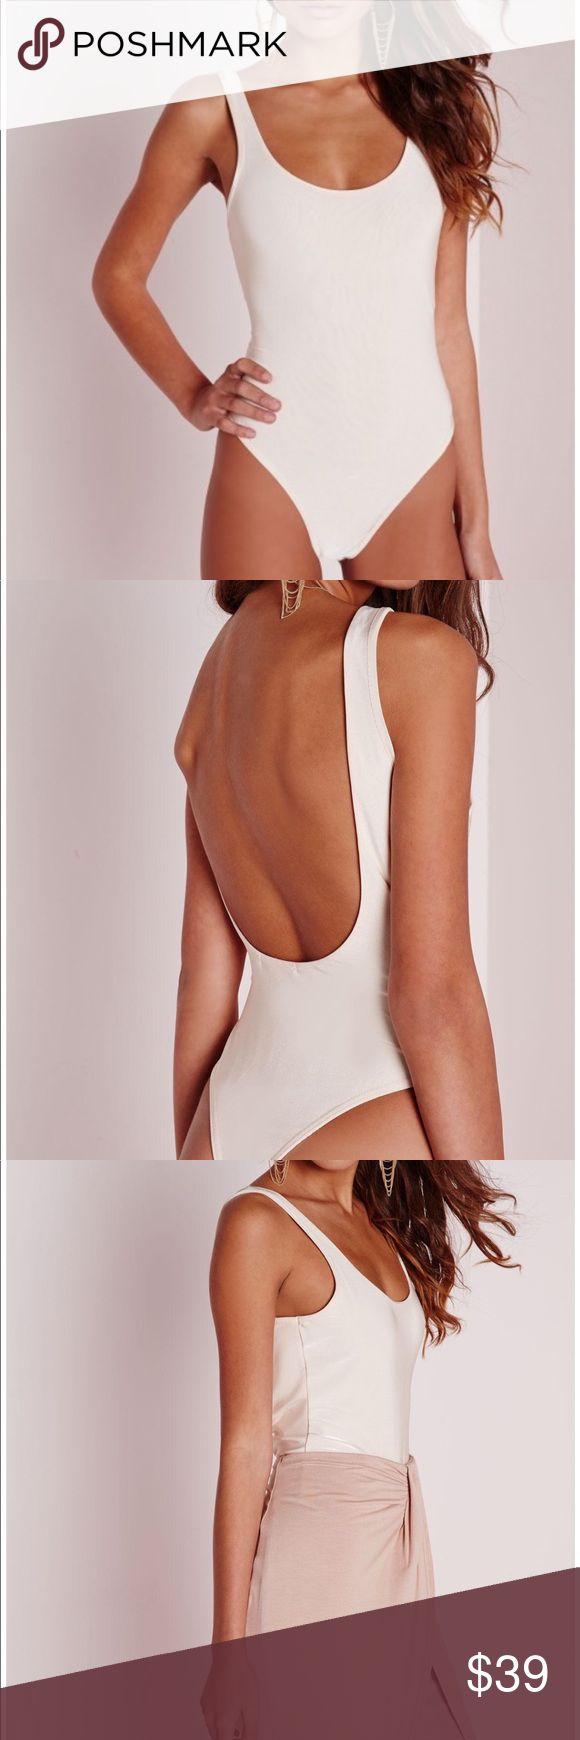 Missguided scoop back bodysuit seamless ⚡️NO trades  ⚡️open to ALL offers!  ⚡️ bundle for MAJOR discounts!  ⚡️feel free to ask any questions ⚡️ I will not respond to offers in the comments, please use the offer button for all offers.  ⚡️Please only ask for model photos if you are very interested!  ⚡️All sales are final and all offers are binding.  ⚡️ If I miss your comment, please comment again! Missguided Tops